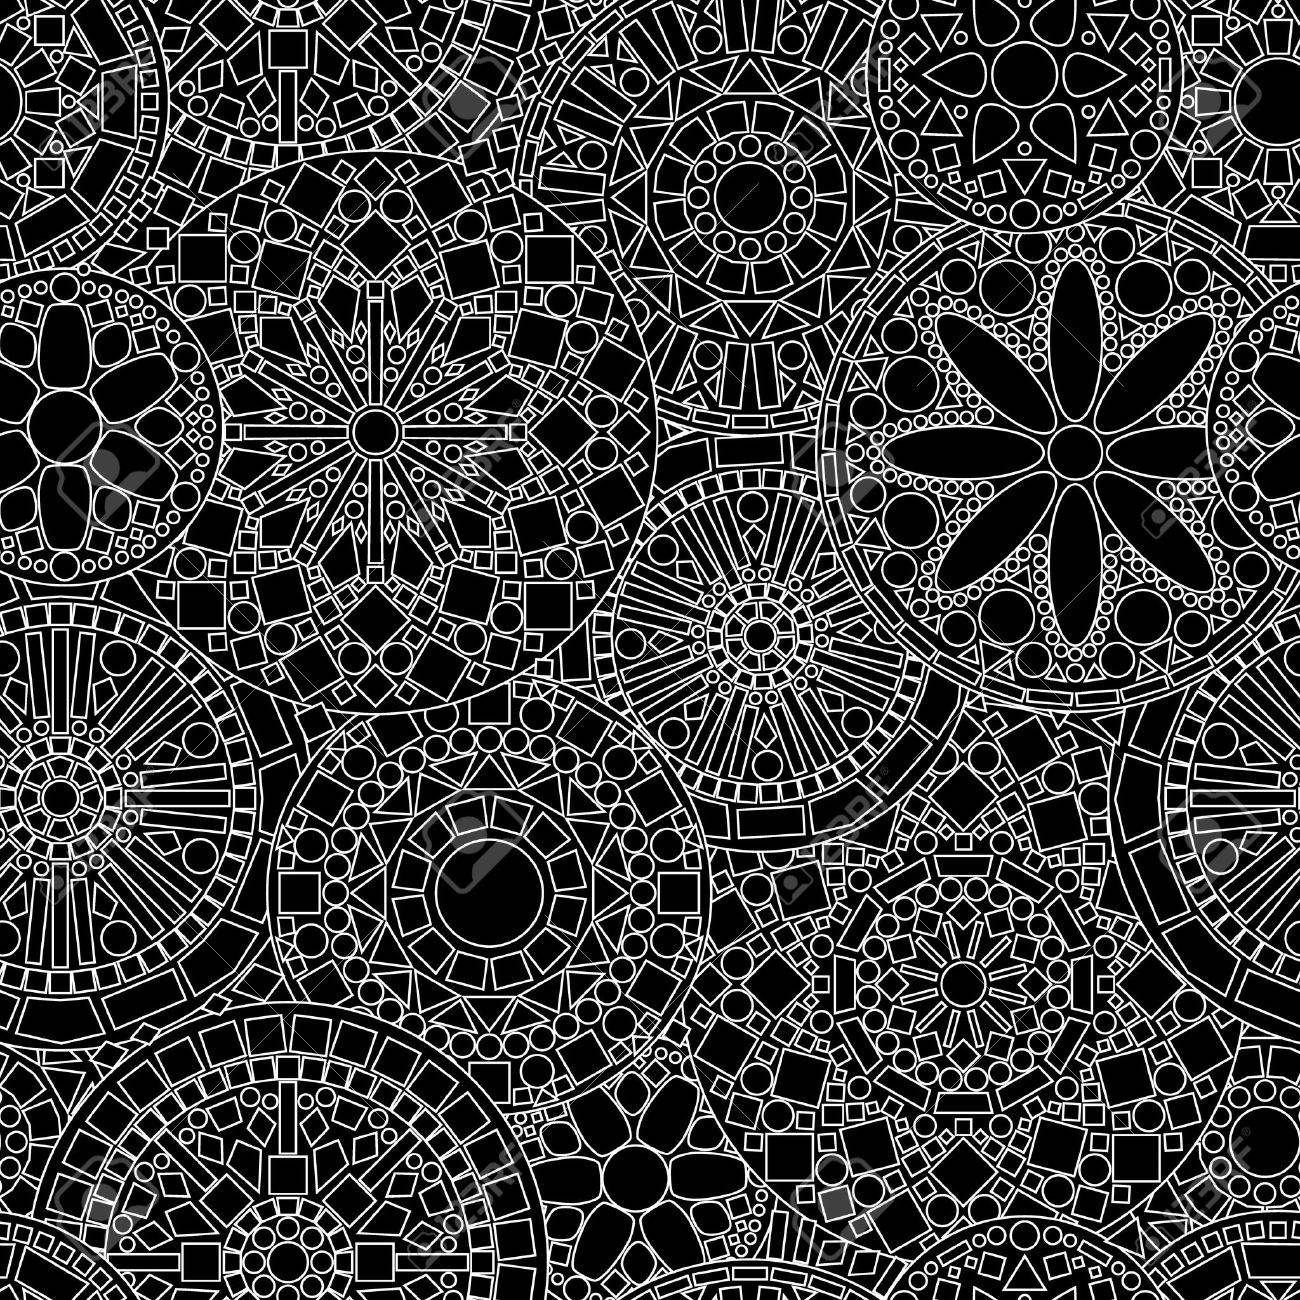 Lacy circle flower mandalas seamless pattern in black and white - 27458715